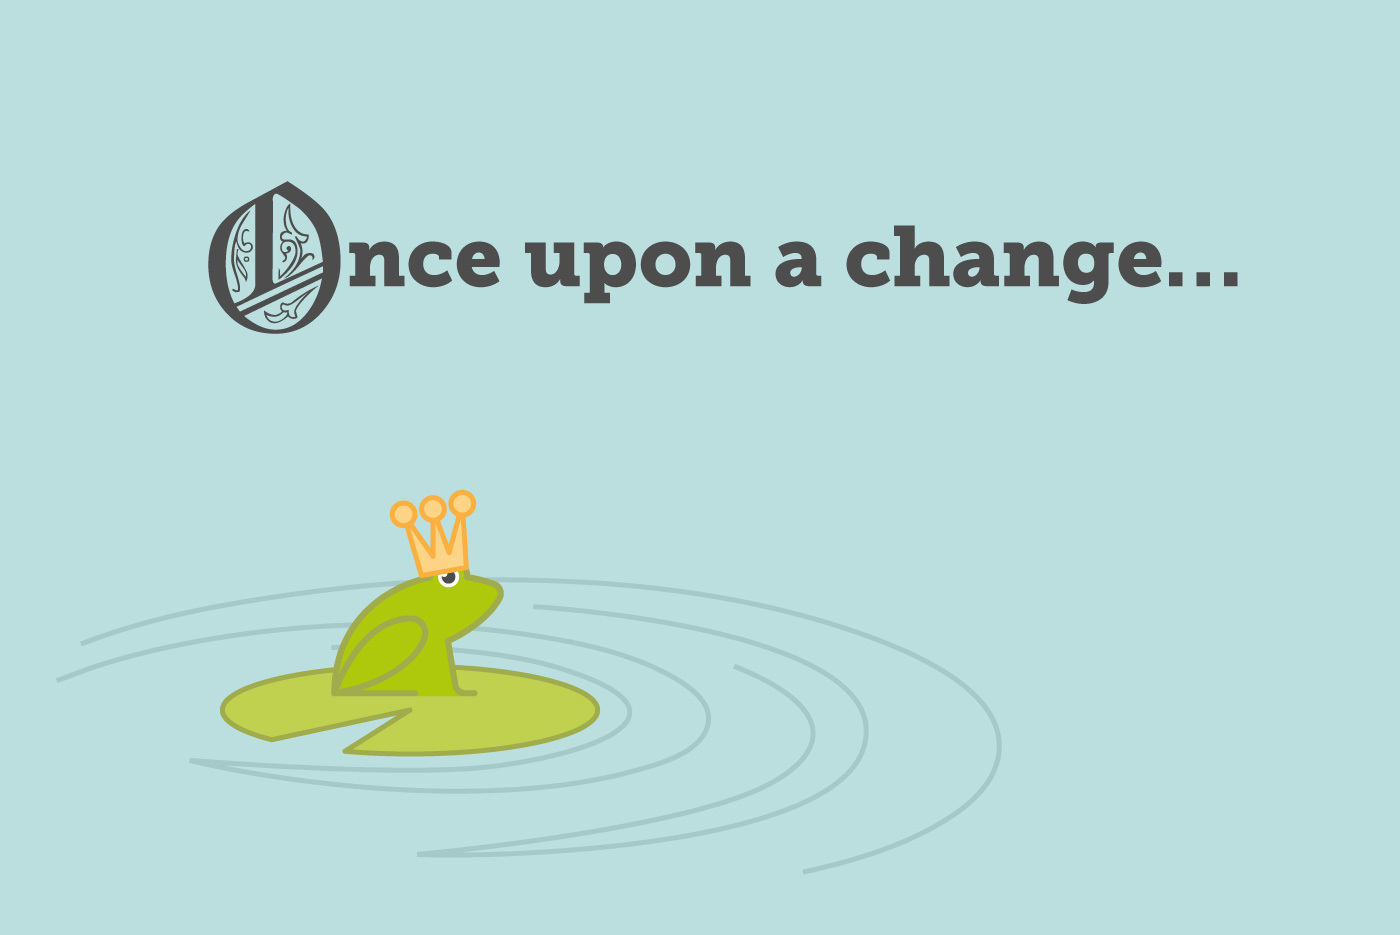 Communicating the story of change - a frog sitting on a lily pad with the text 'Once upon a change'